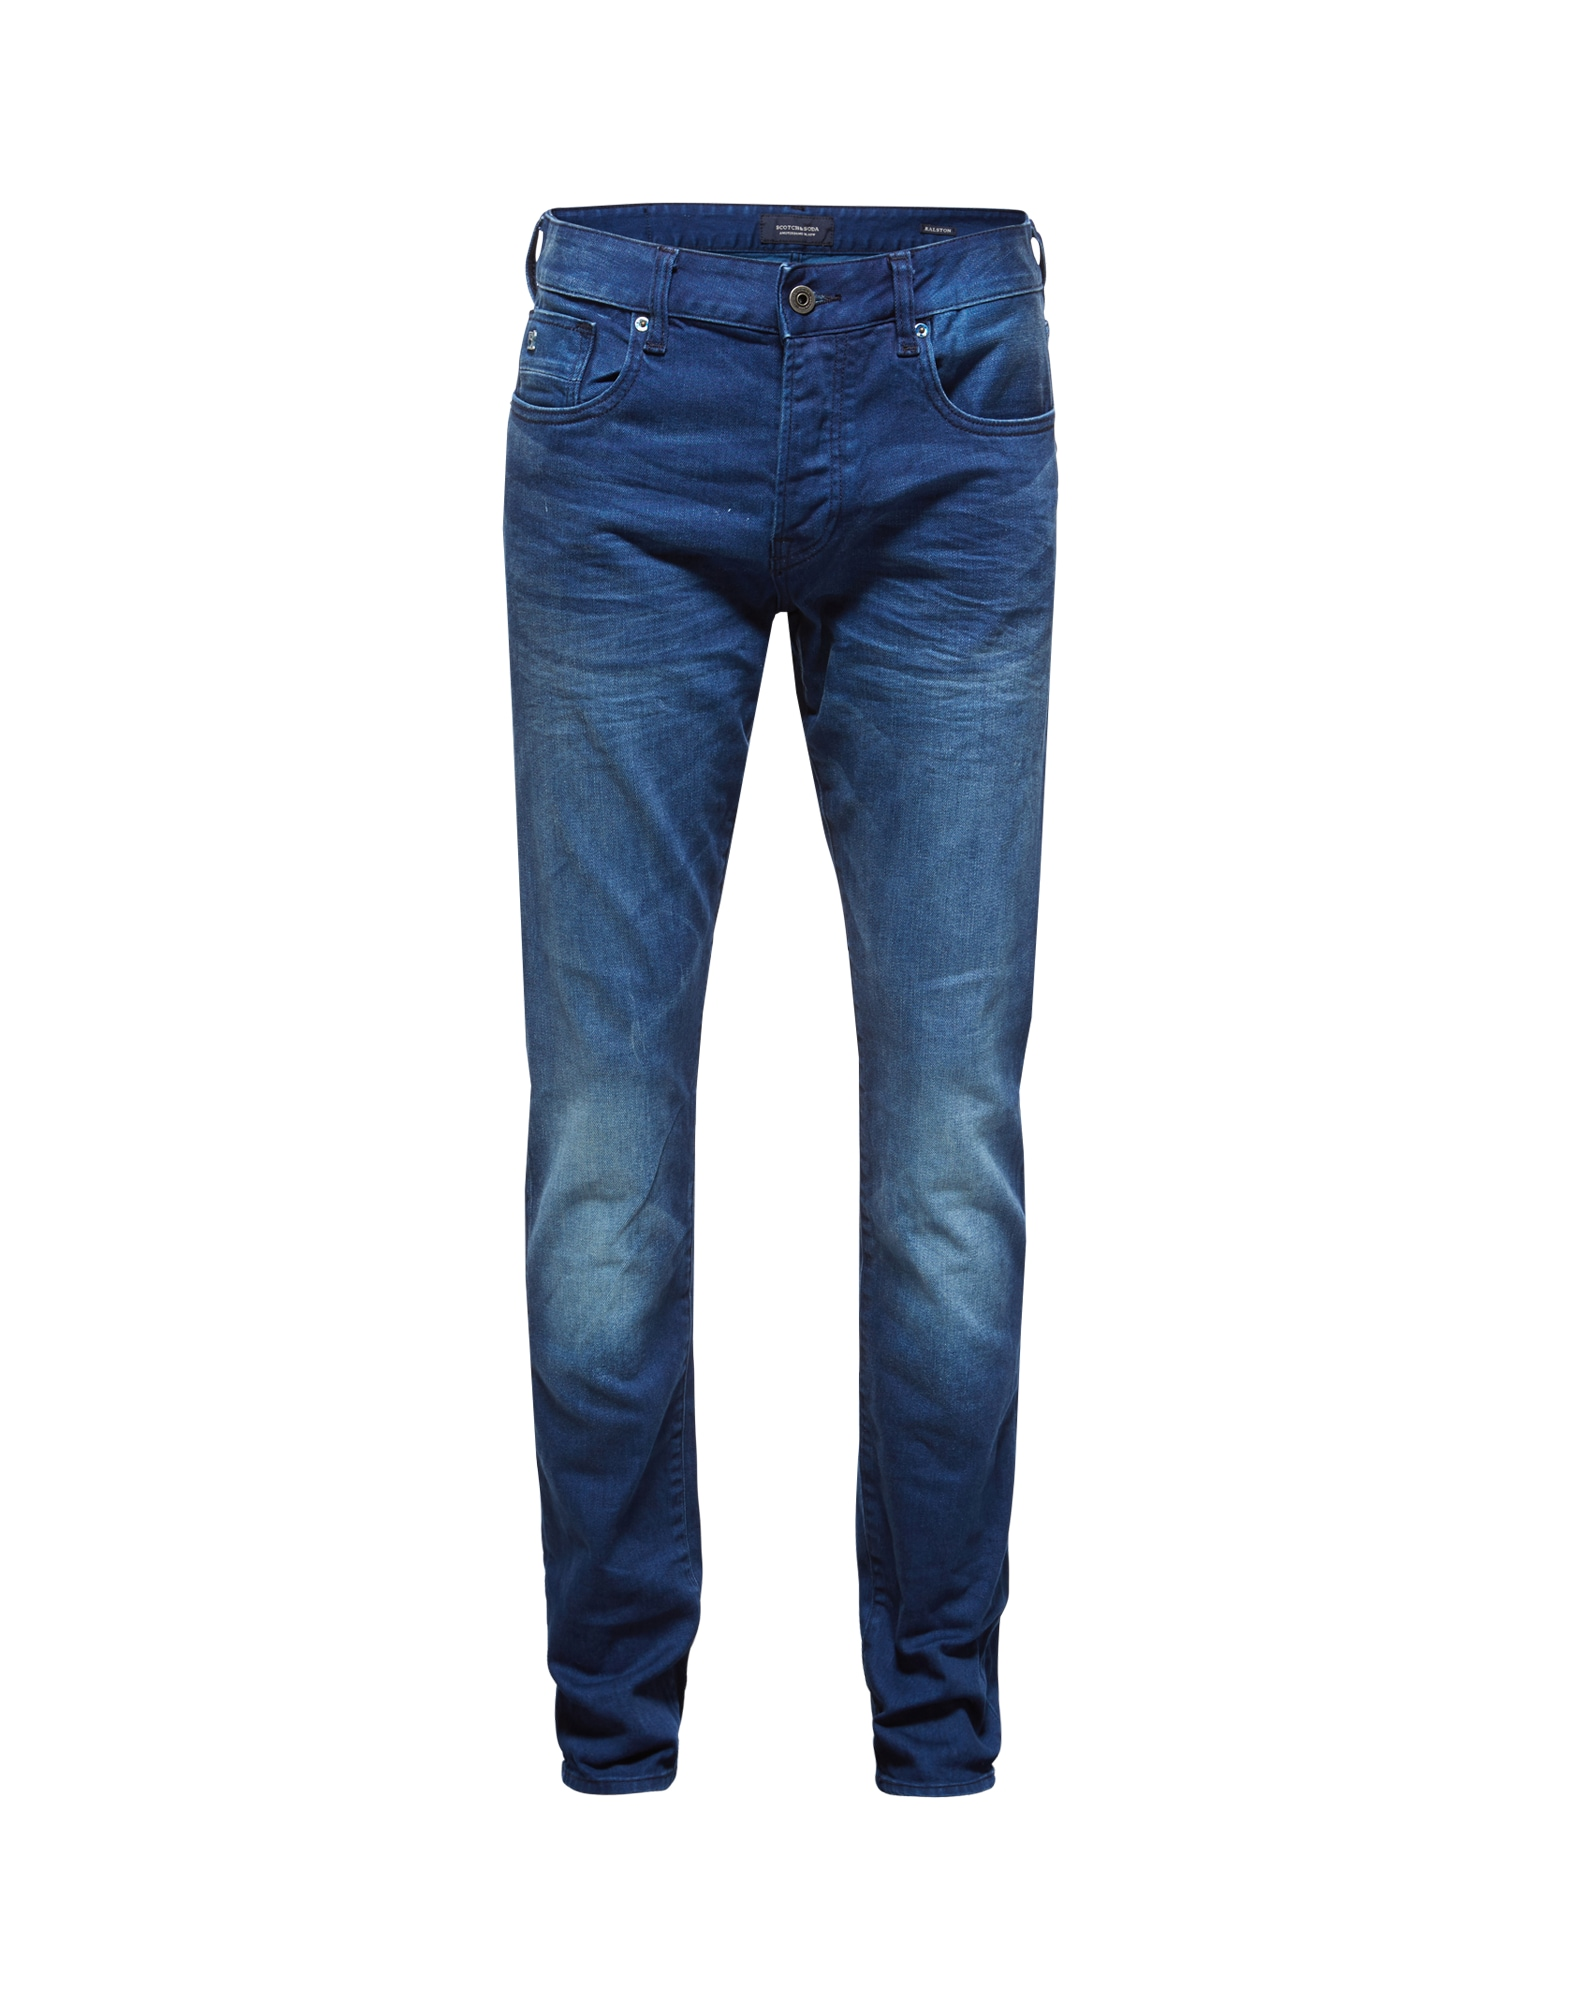 SCOTCH  and  SODA Heren Jeans Ralston Winter Spirit donkerblauw